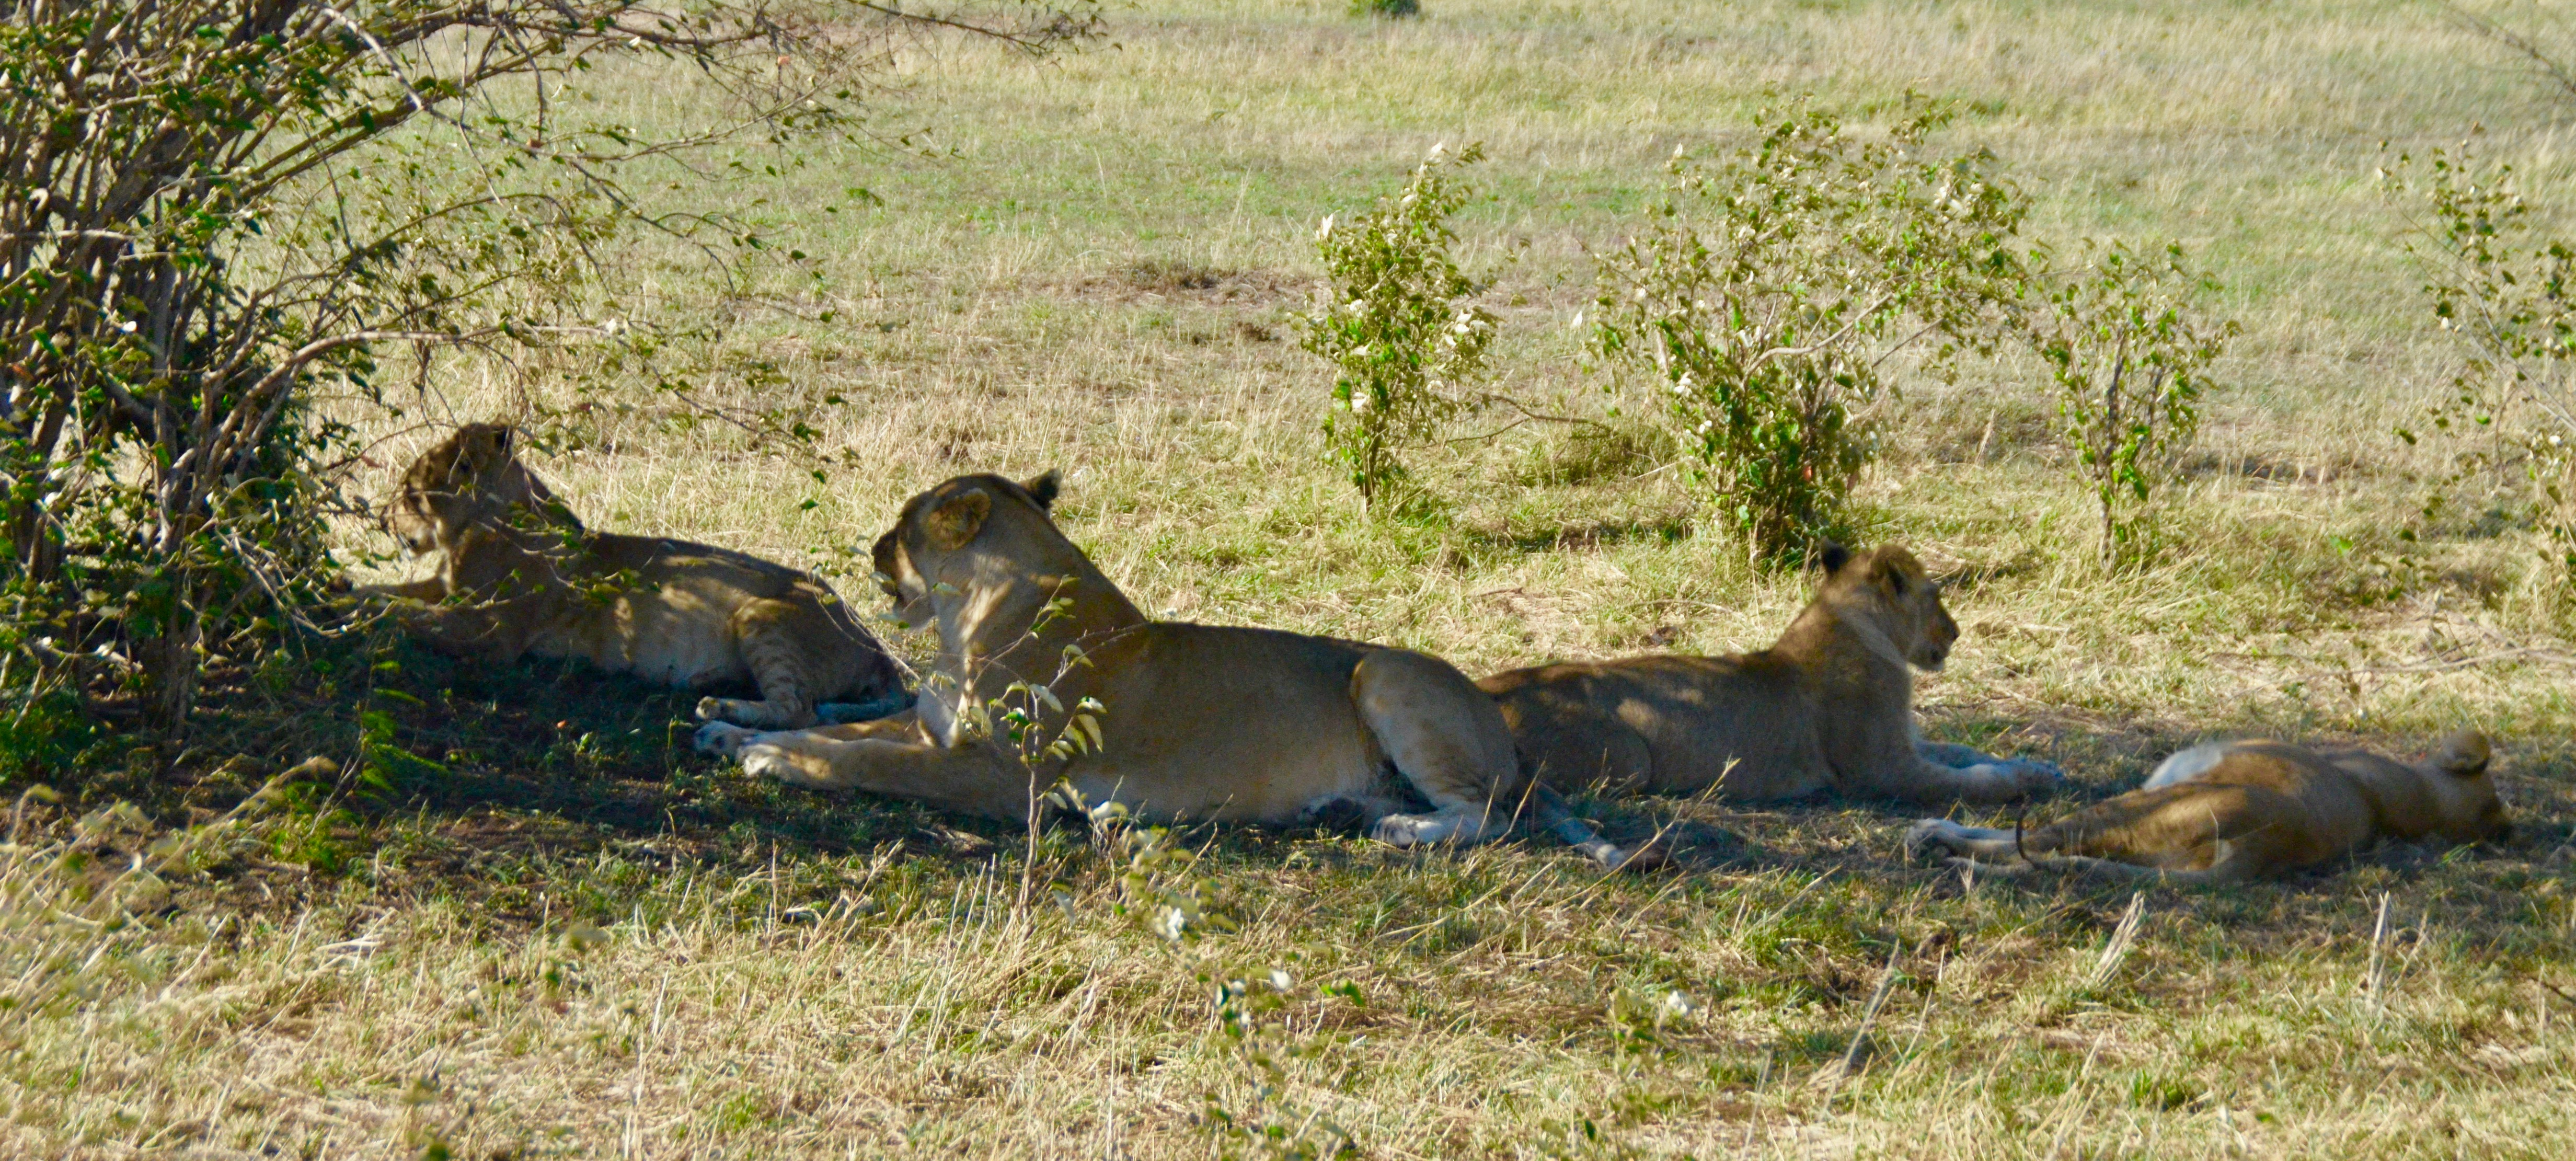 Four Sated Lions, Masai Mara